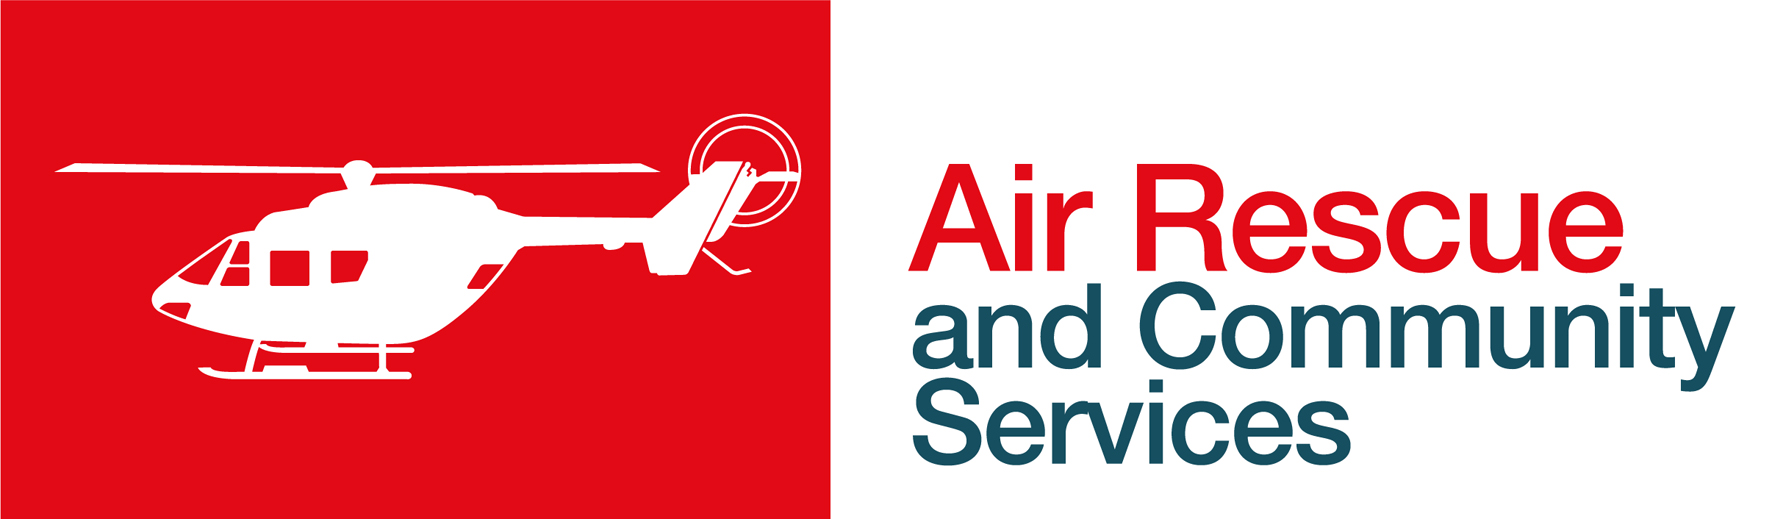 Air Rescue and Community Services